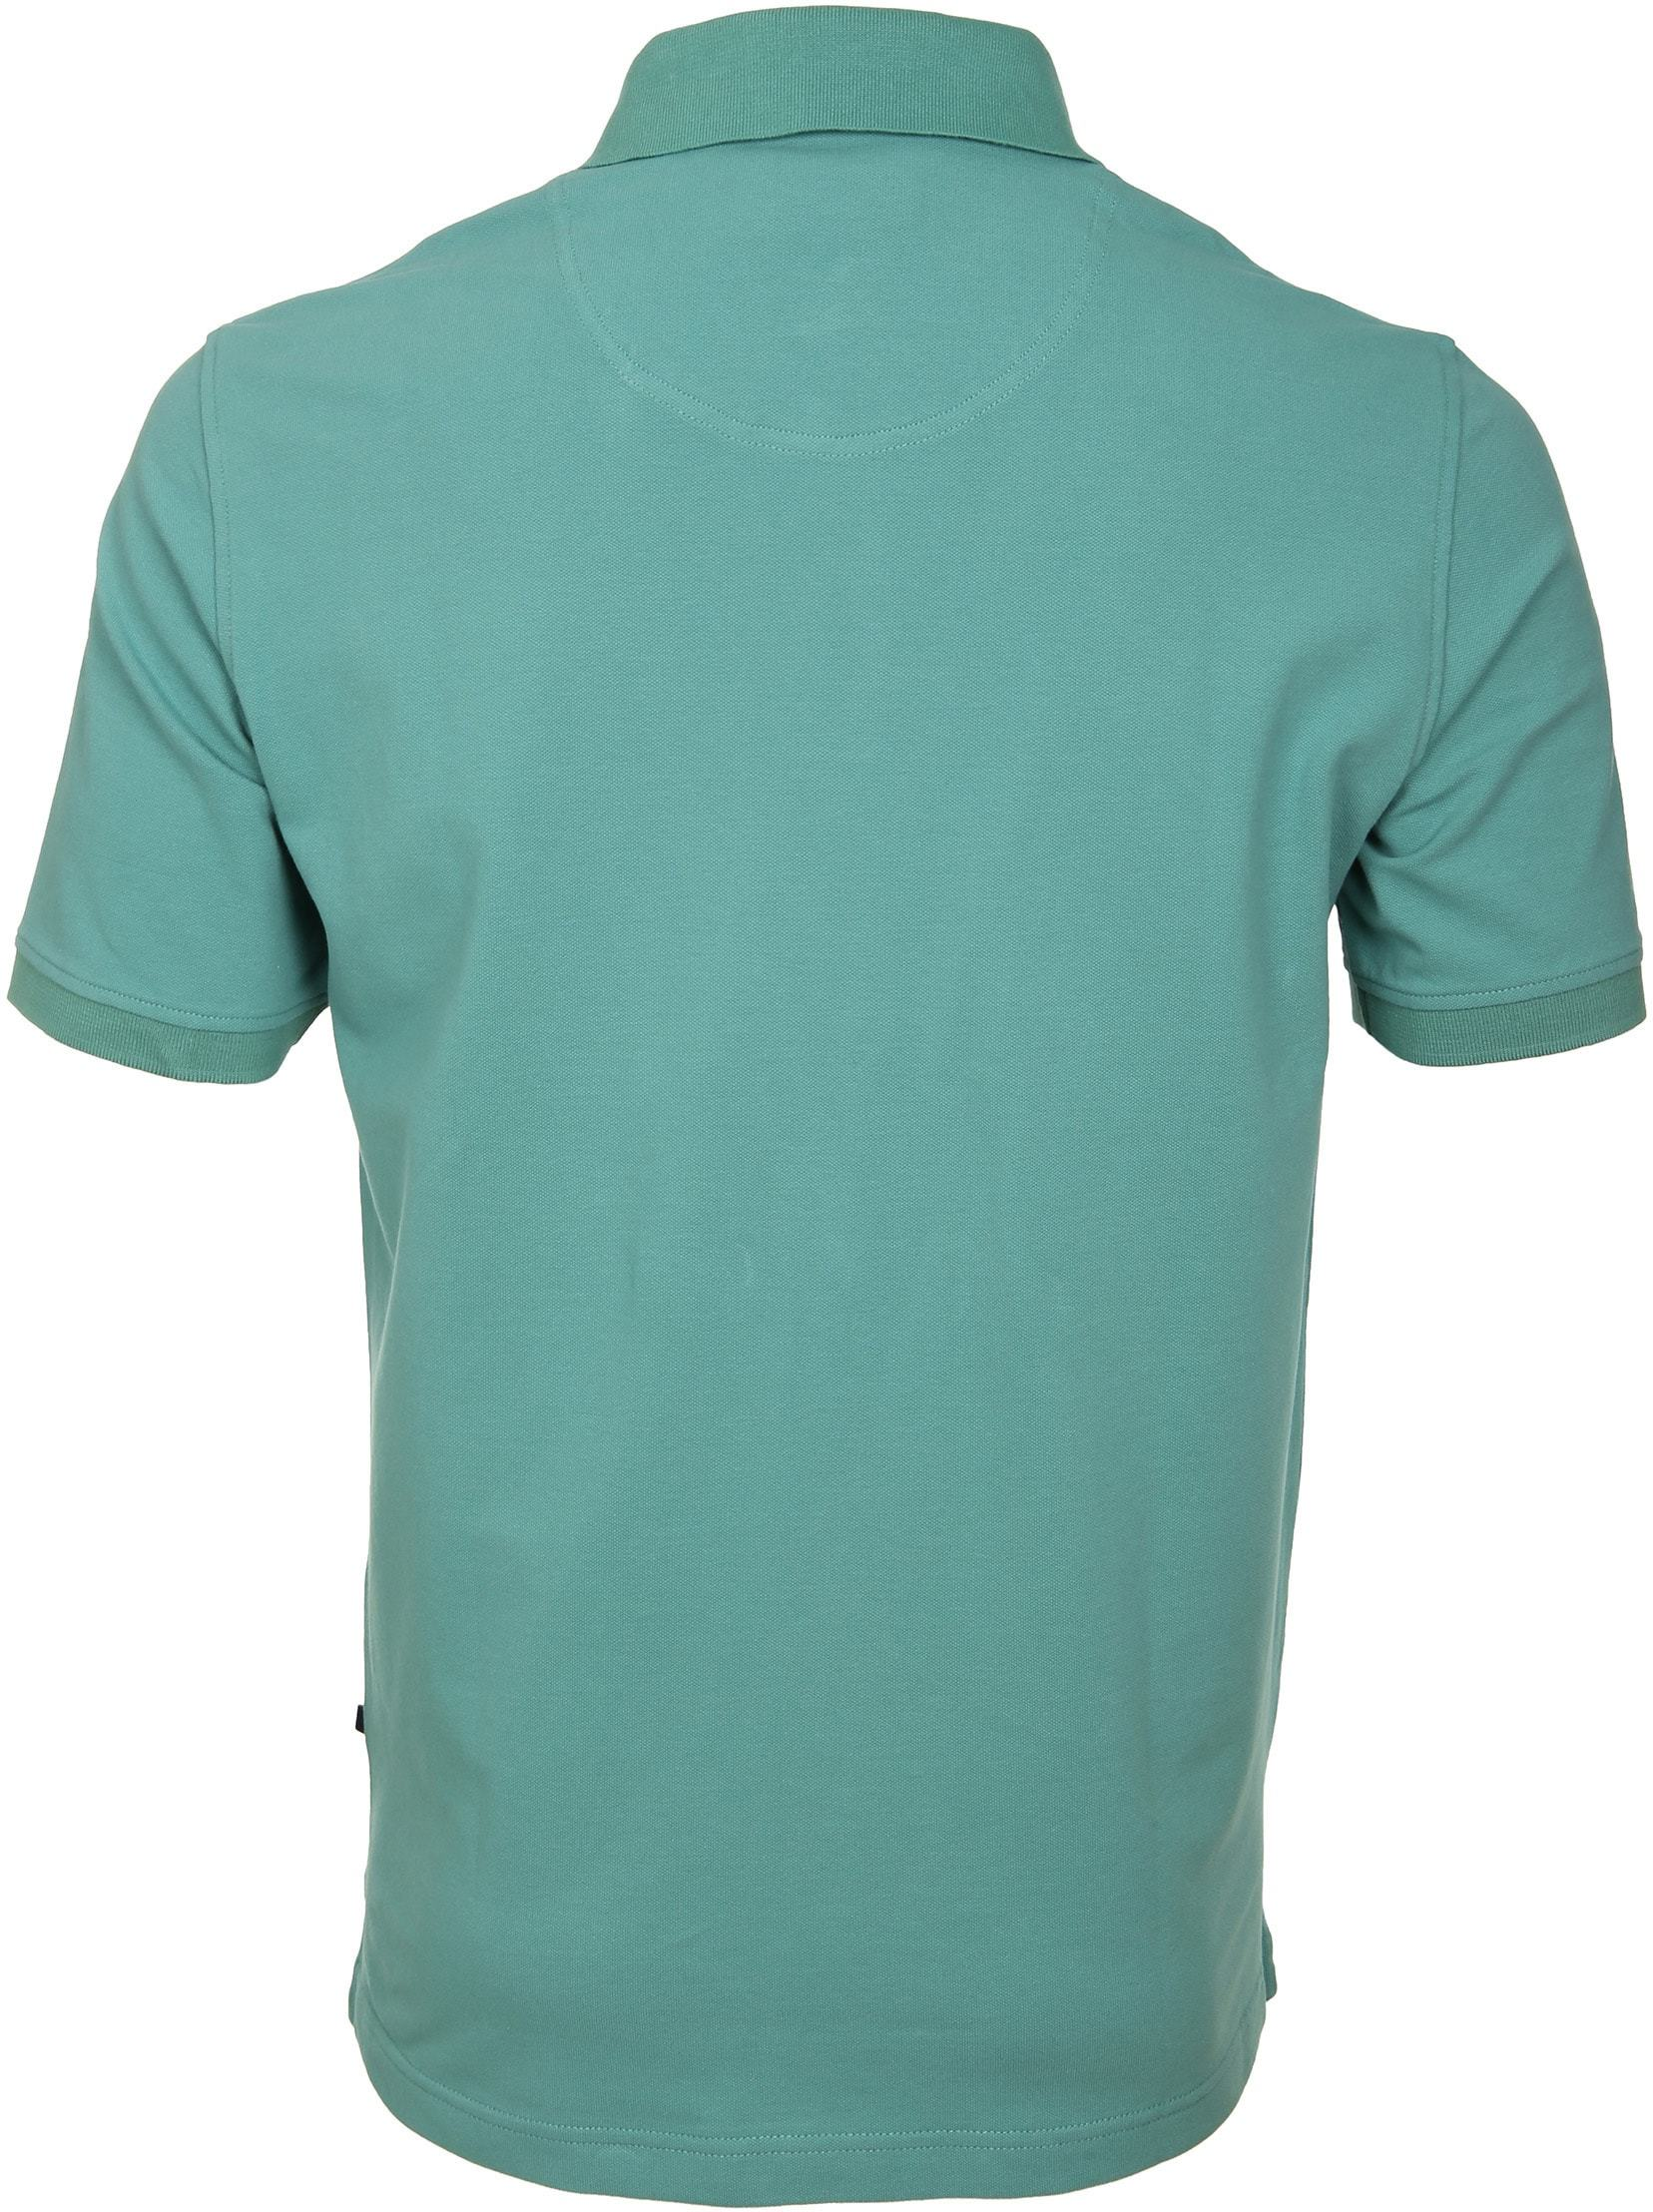 Suitable Polo Basic Groen foto 4